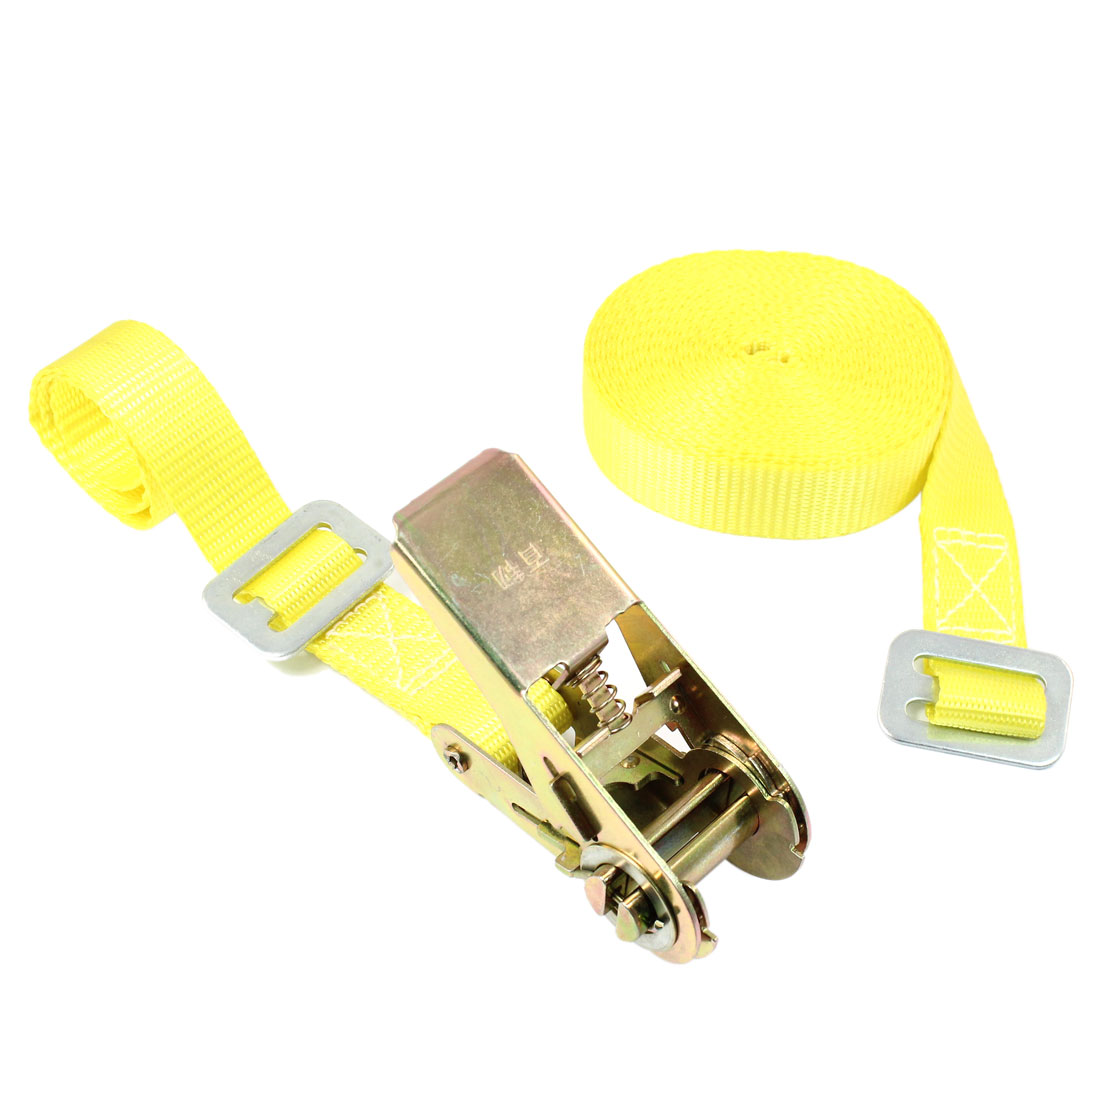 Travel Luggage Binding Adjustable Metal Ratchet Tie Down Strap 5M 16ft Yellow